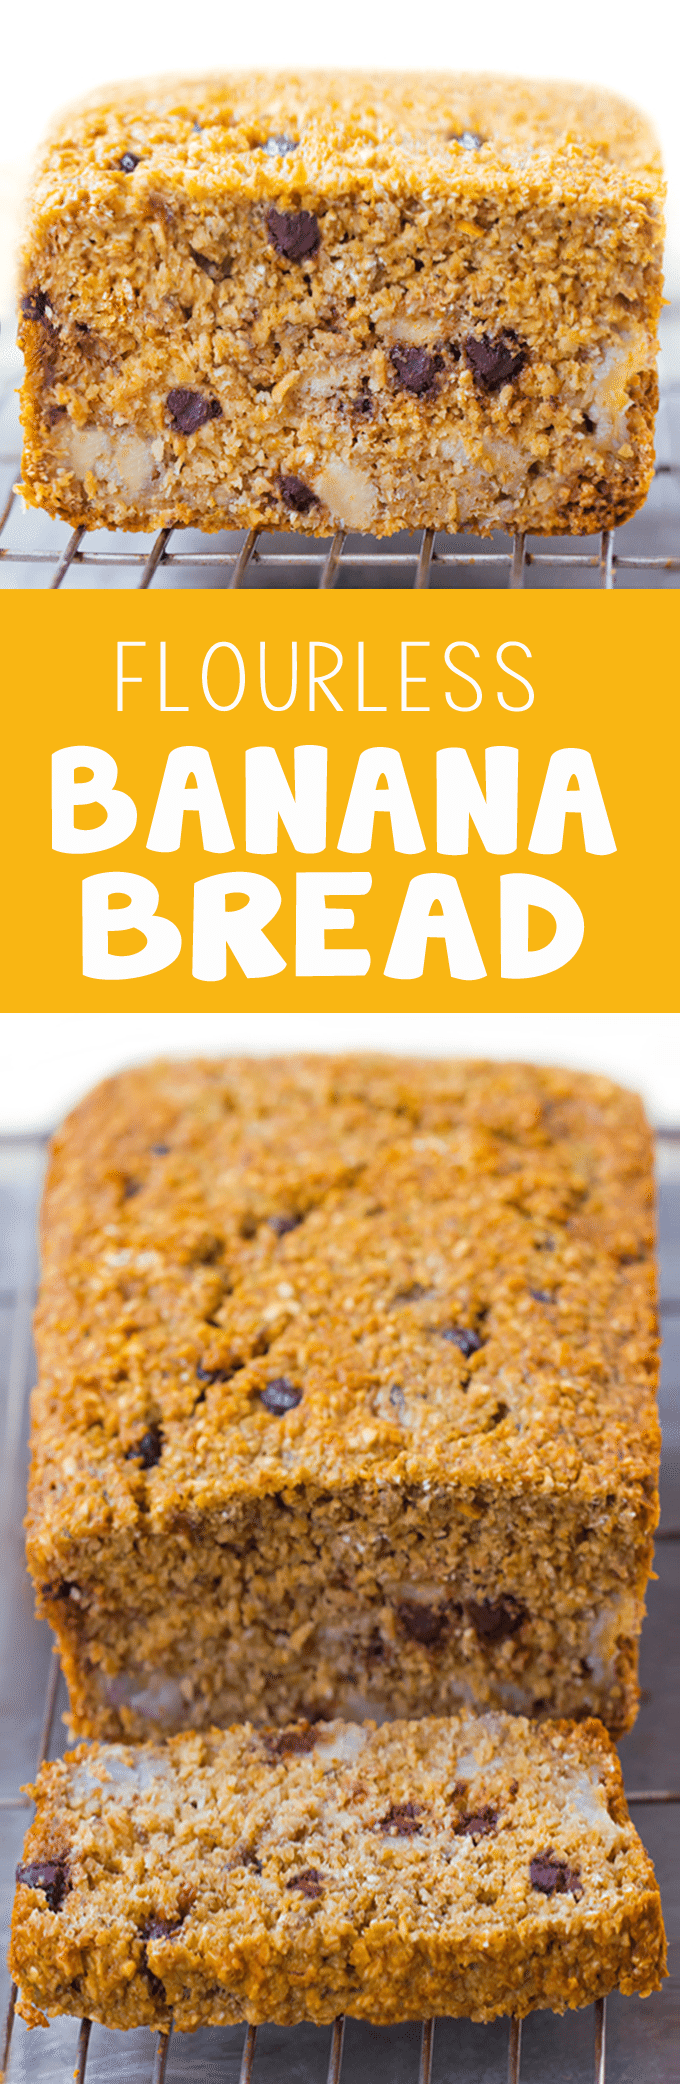 Flourless Banana Bread - 2 cups mashed banana, 1 cup oats, 1/2 tsp baking soda, 3 cups... https://chocolatecoveredkatie.com/2015/09/28/flourless-banana-bread-recipe/ @choccoveredkt